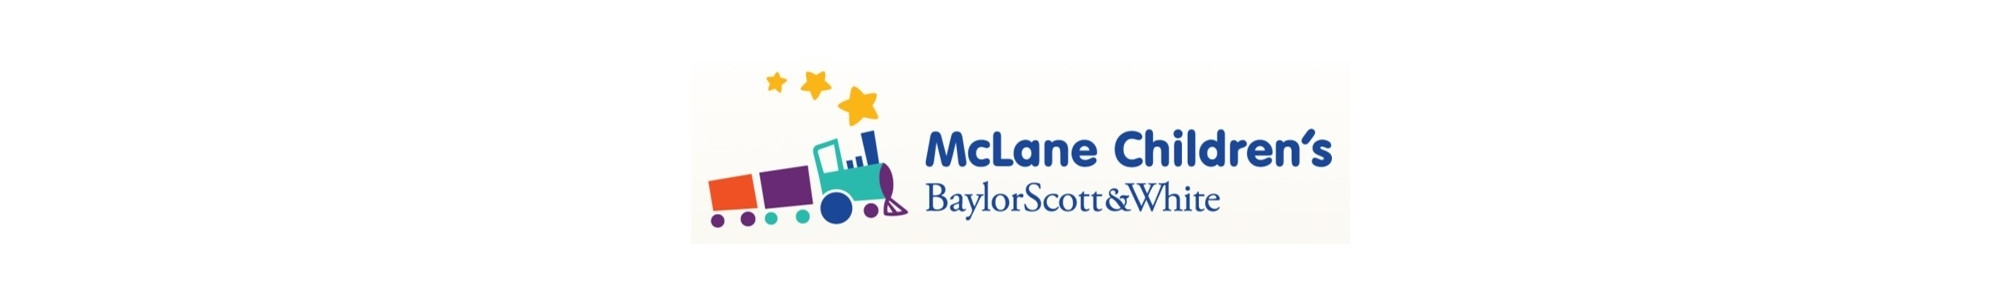 Baylor Scott and White McLane Children's Medical Center